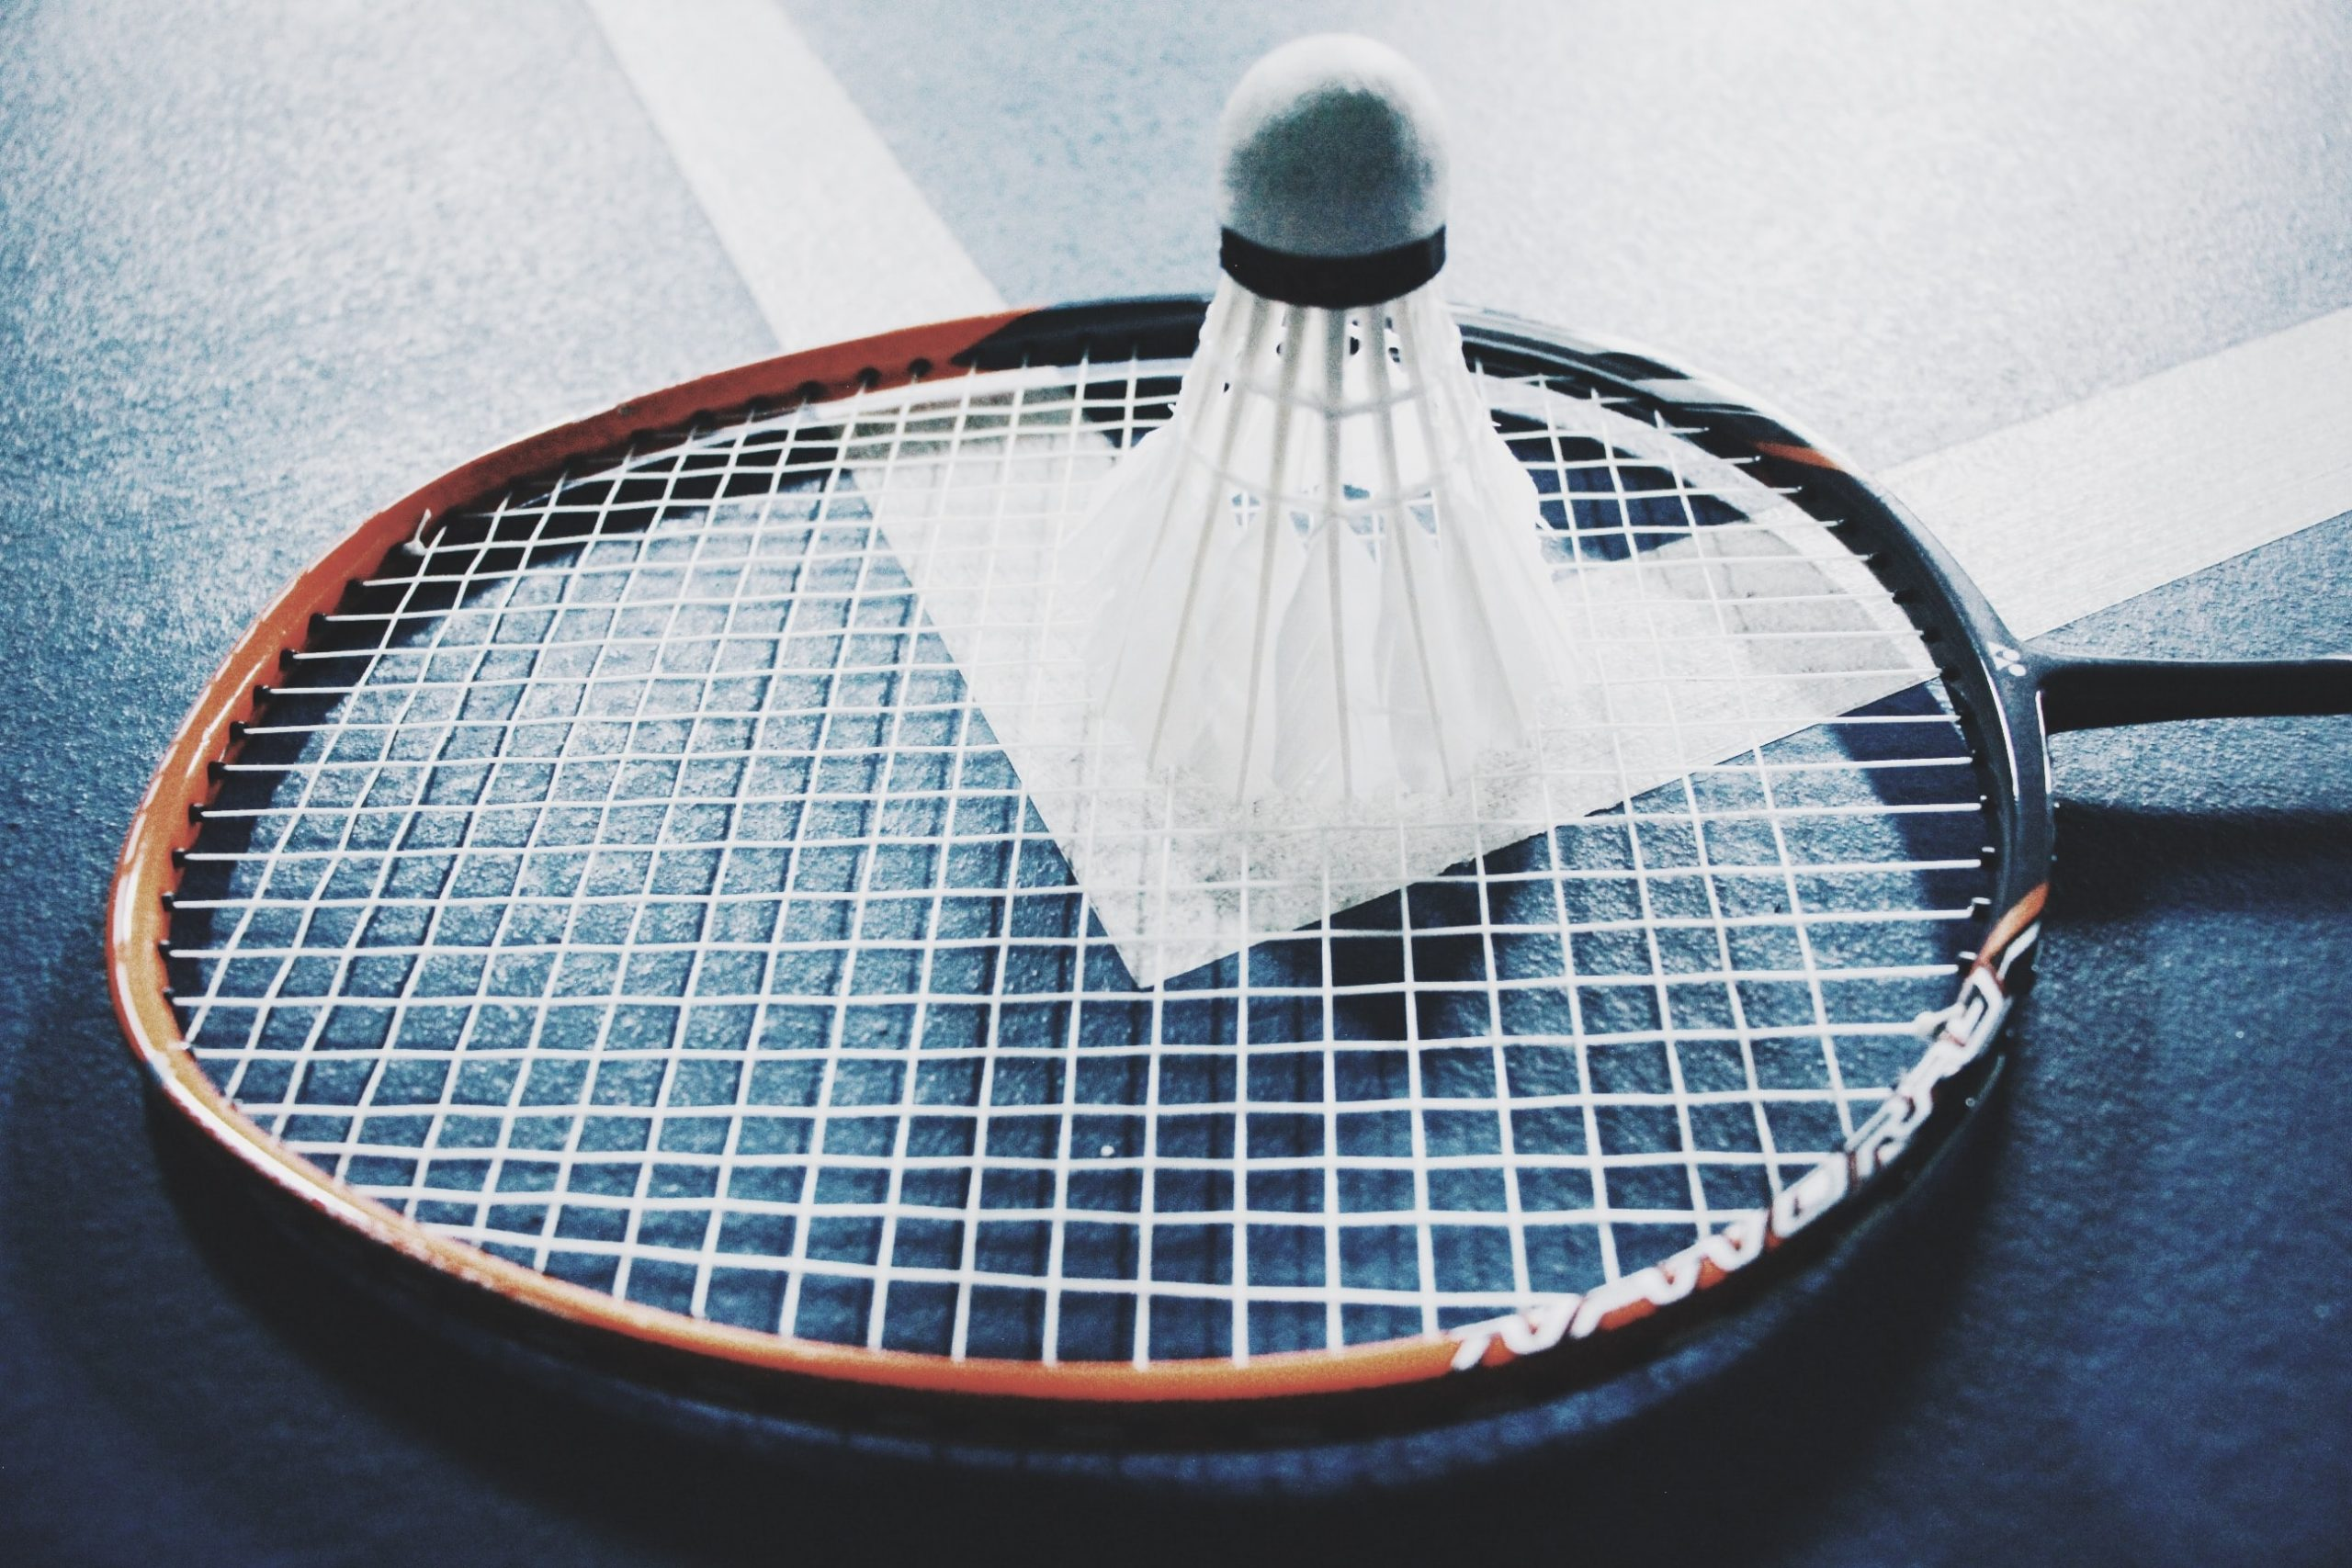 a shuttlecock on top of the badminton racket